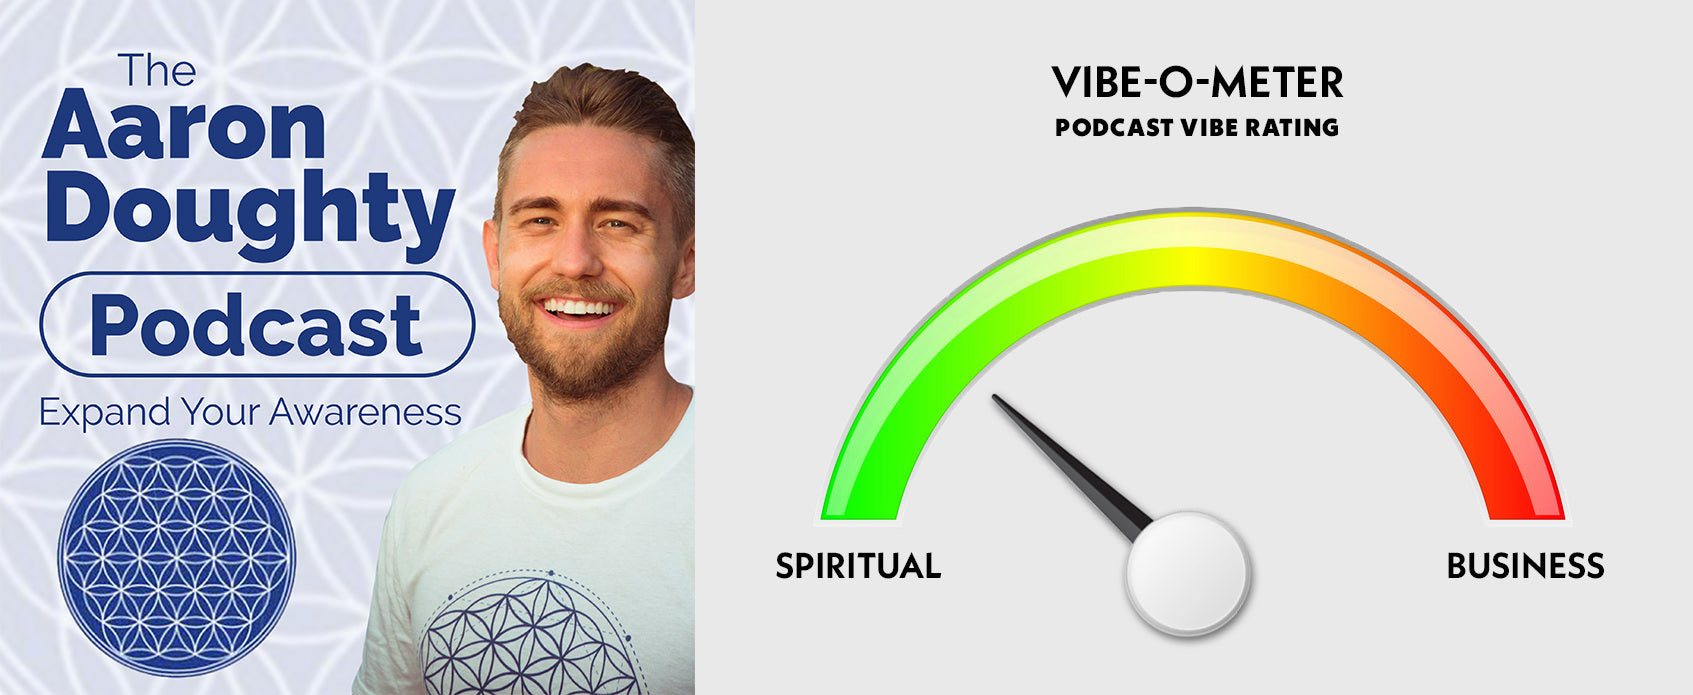 The Aaron Doughty Podcast rating